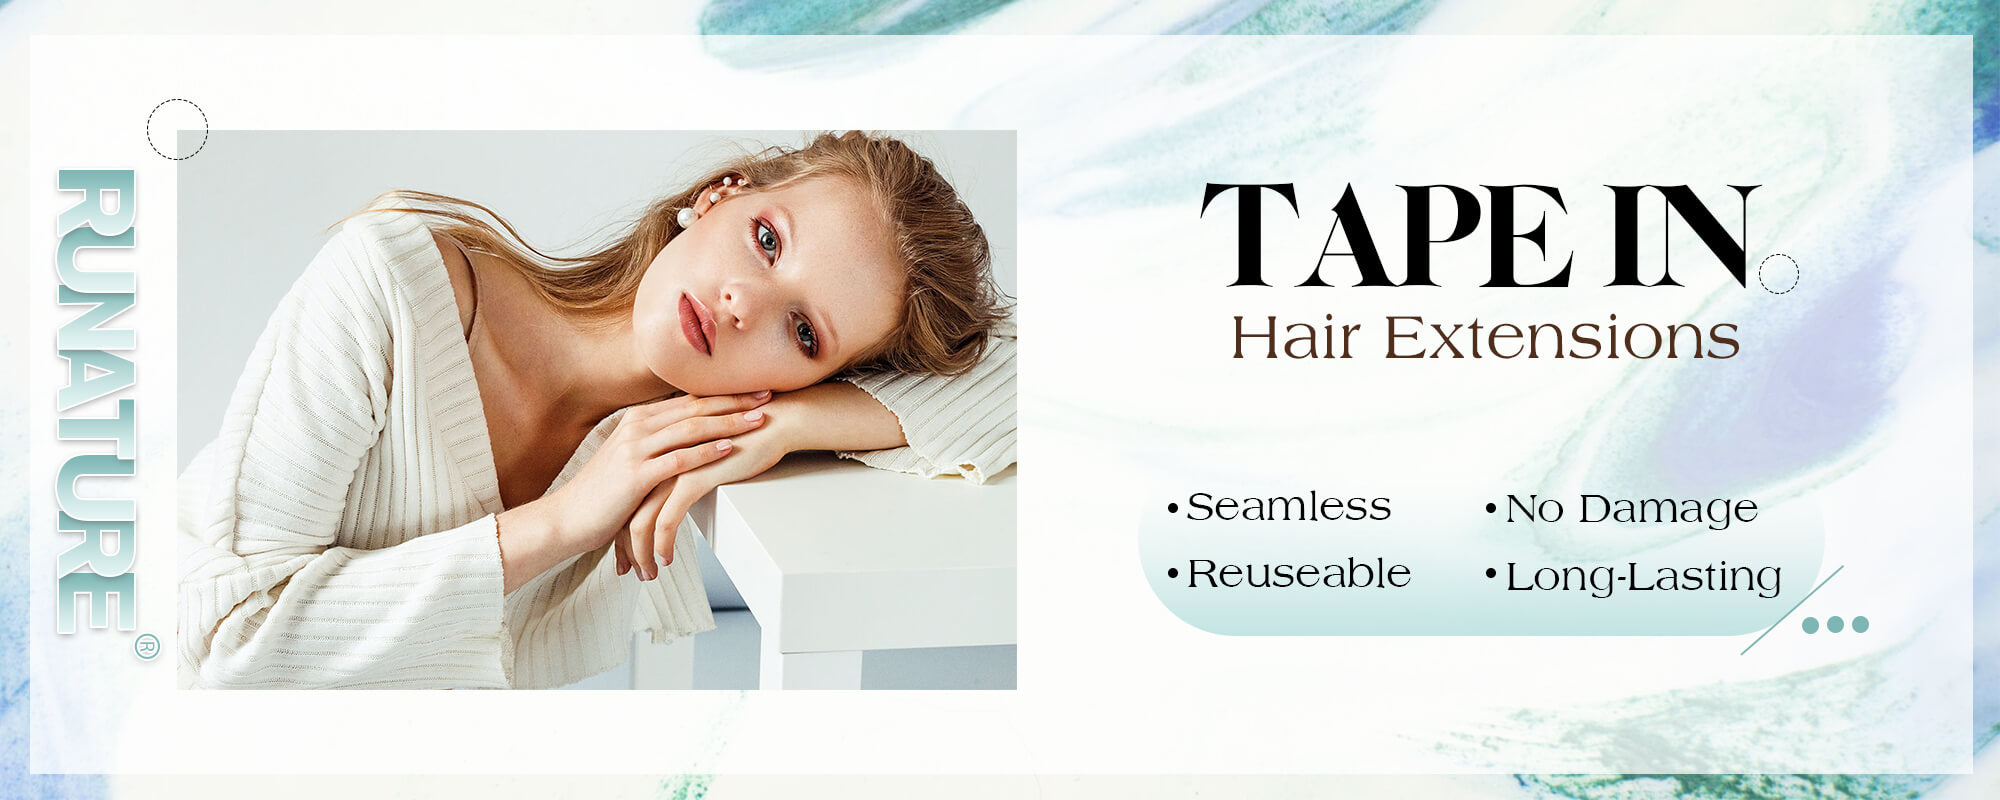 runature tape in hair extensions